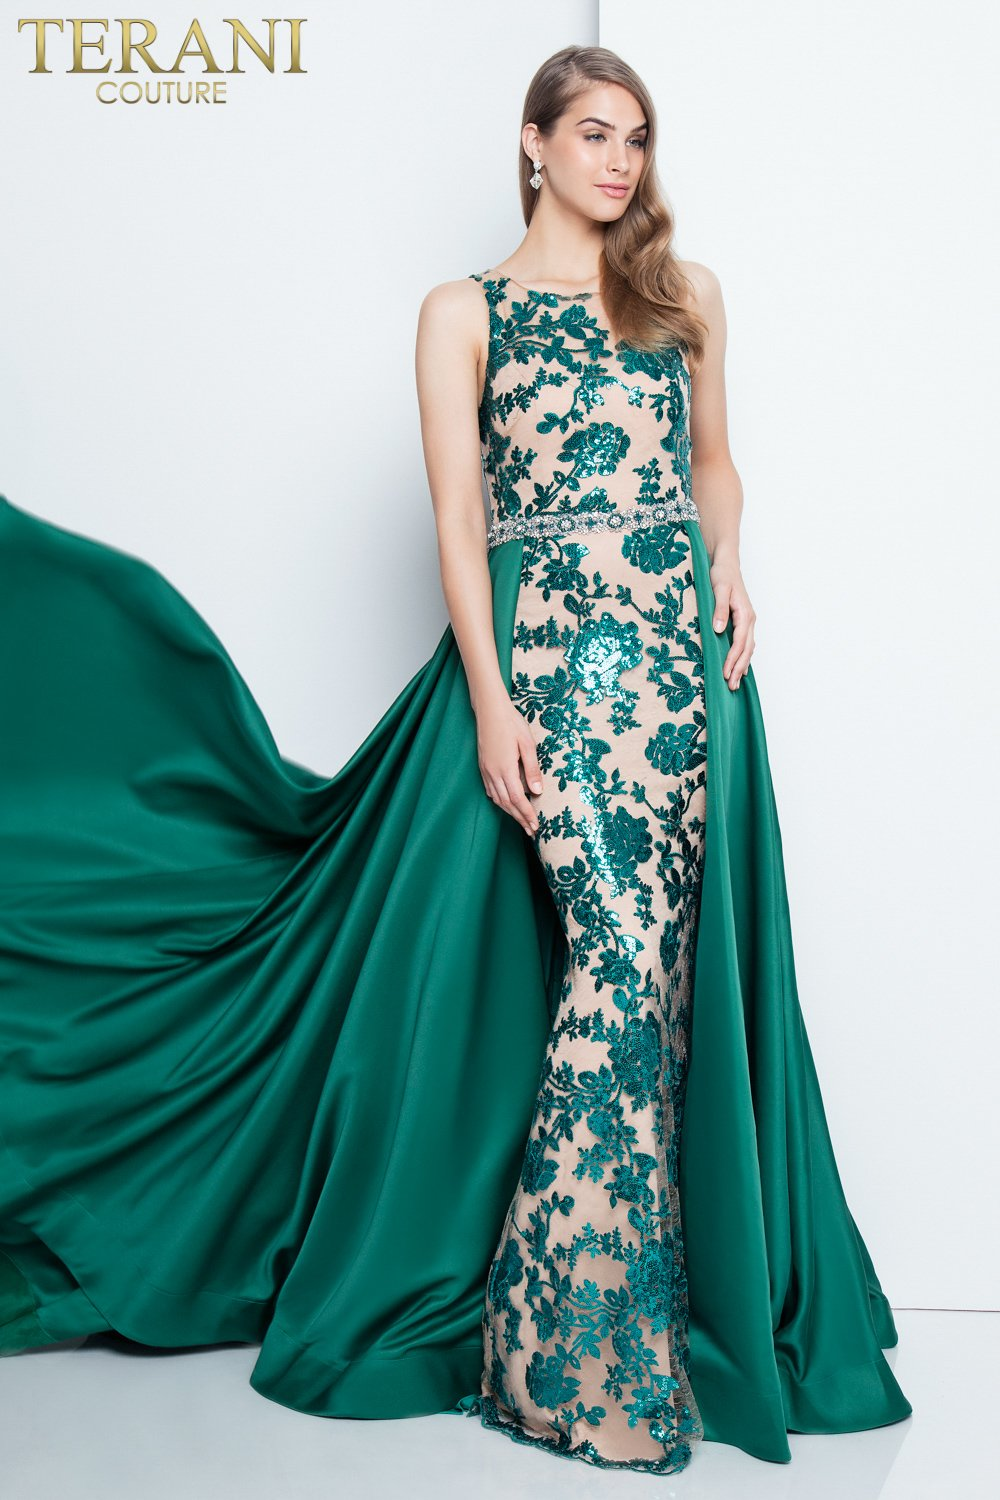 Prom Dresses 2019 | Prom Dress Styles by Terani Couture